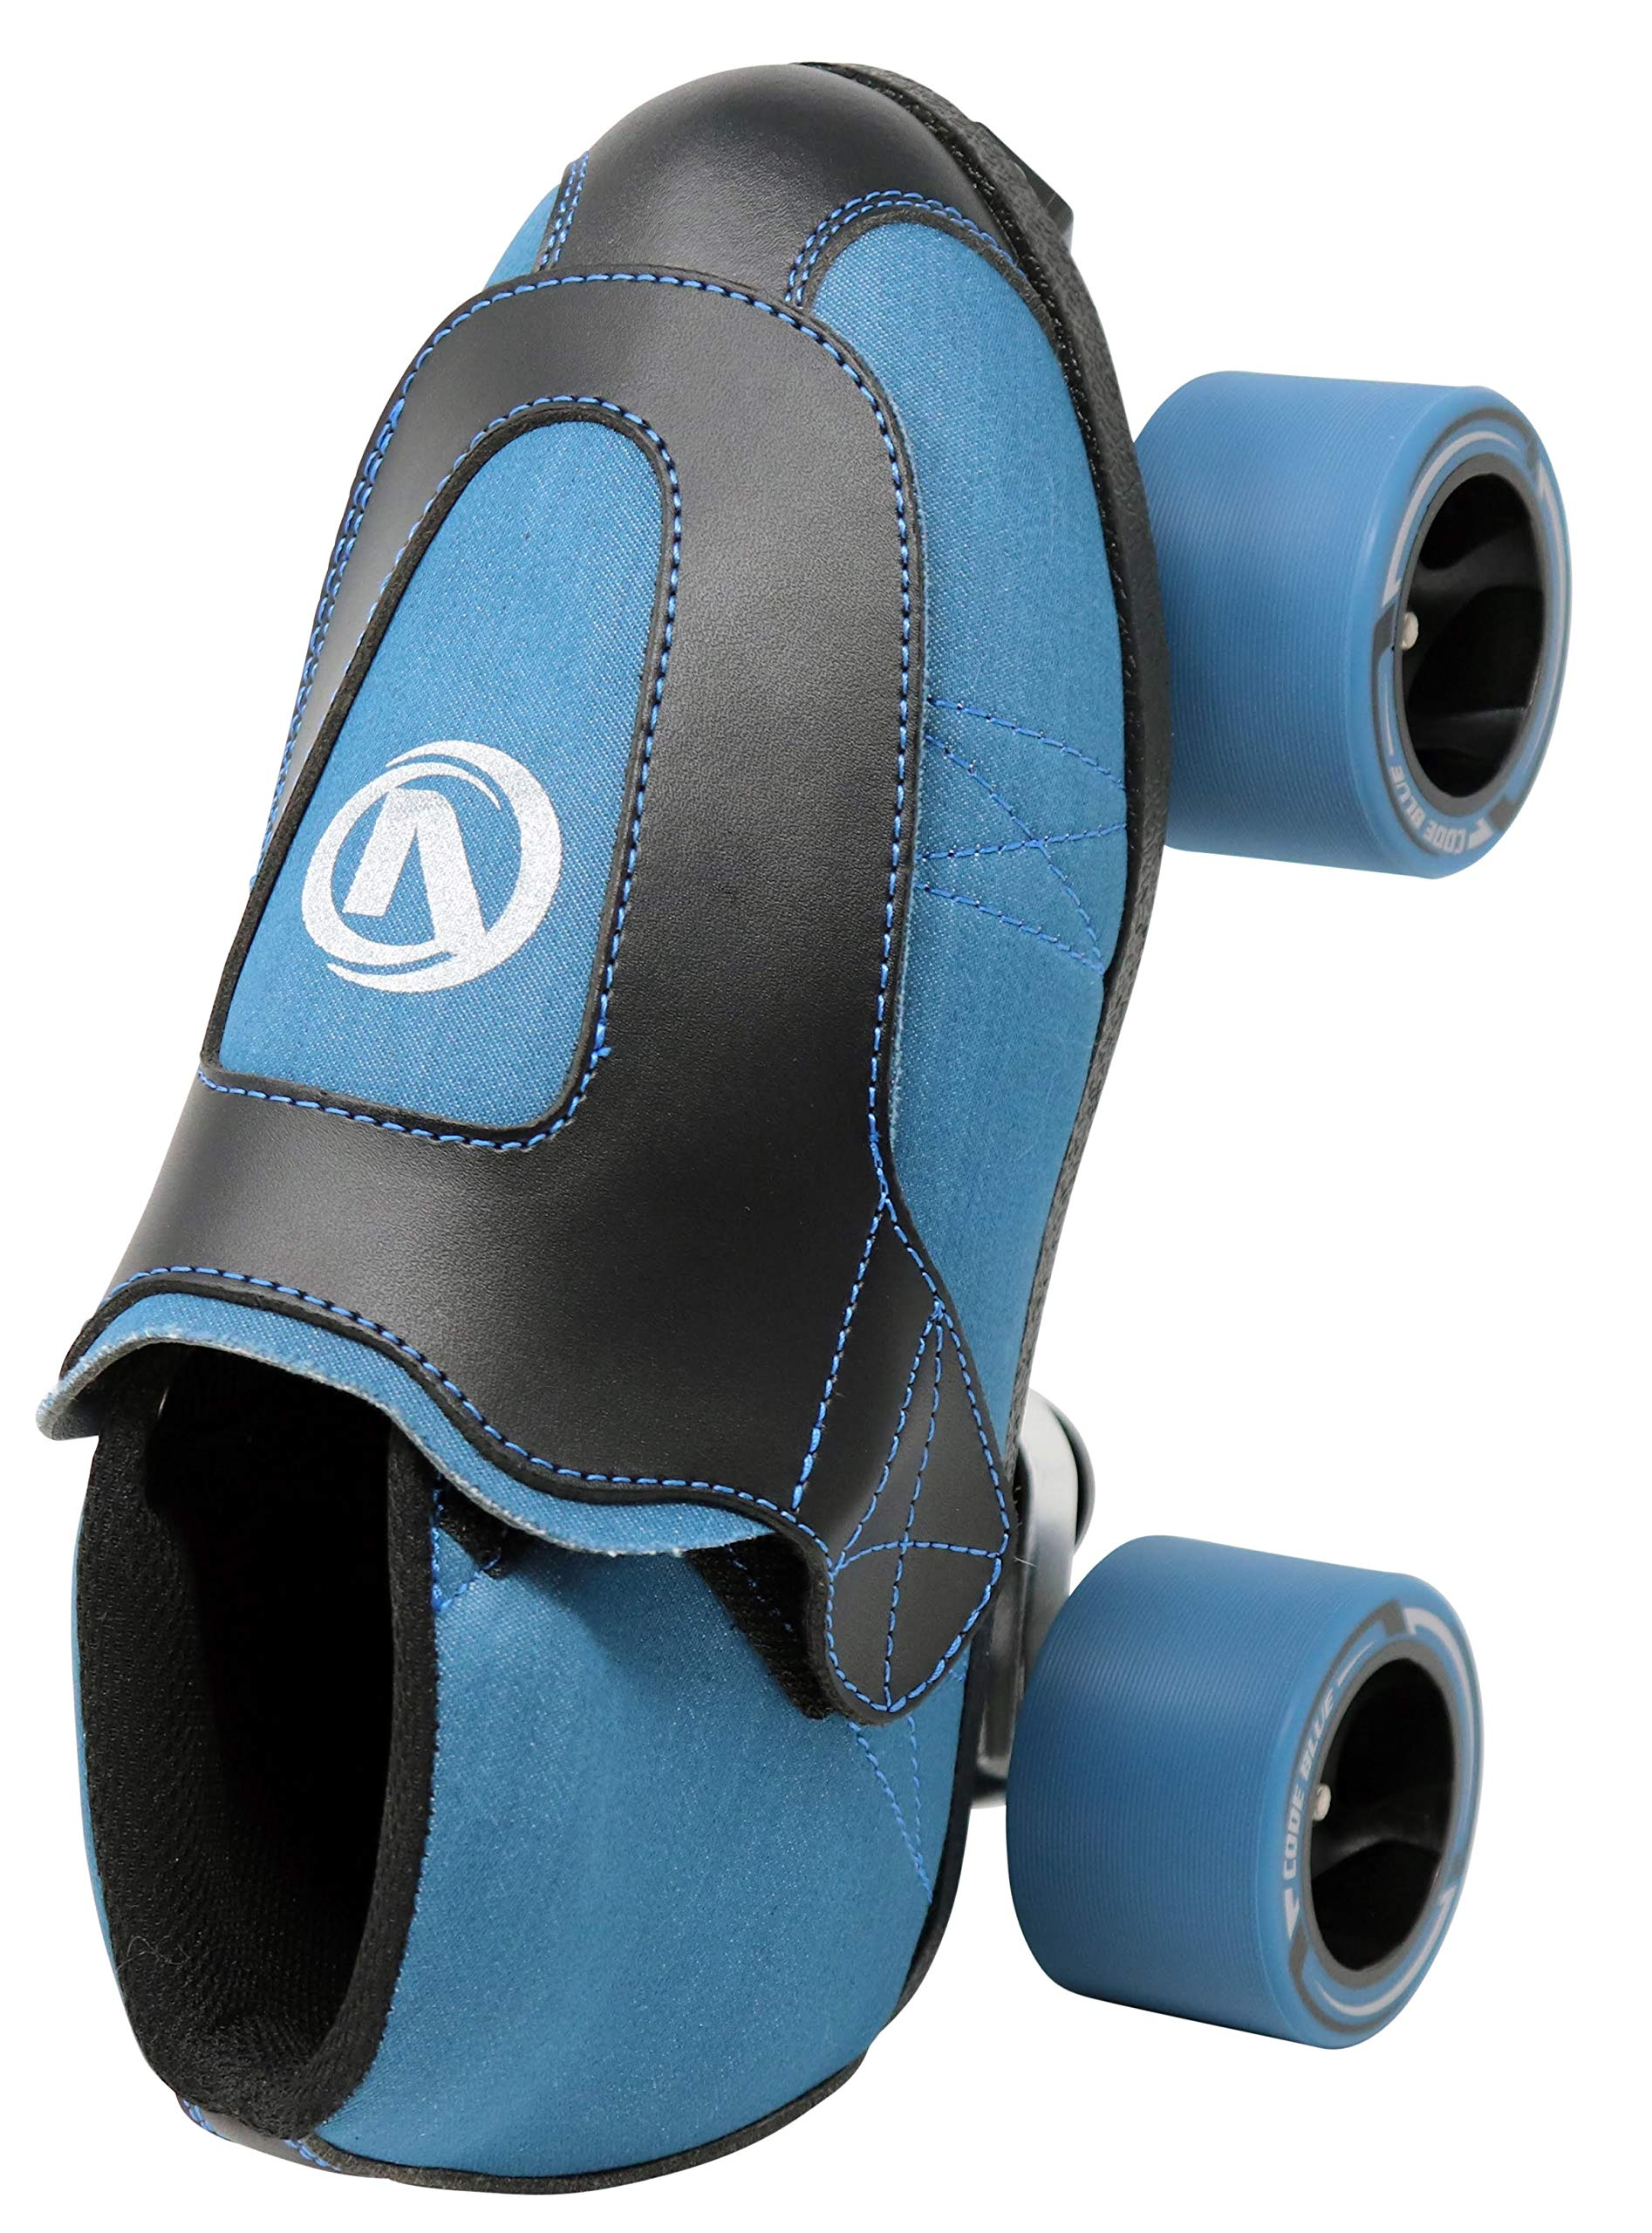 VNLA Code Blue Jam Skate - Mens & Womens Speed Skates - Quad Skates for Women & Men - Adjustable Roller Skate/Rollerskates - Outdoor & Indoor Adult Quad Skate - Kid/Kids Roller Skates (Size 10) by VNLA (Image #4)